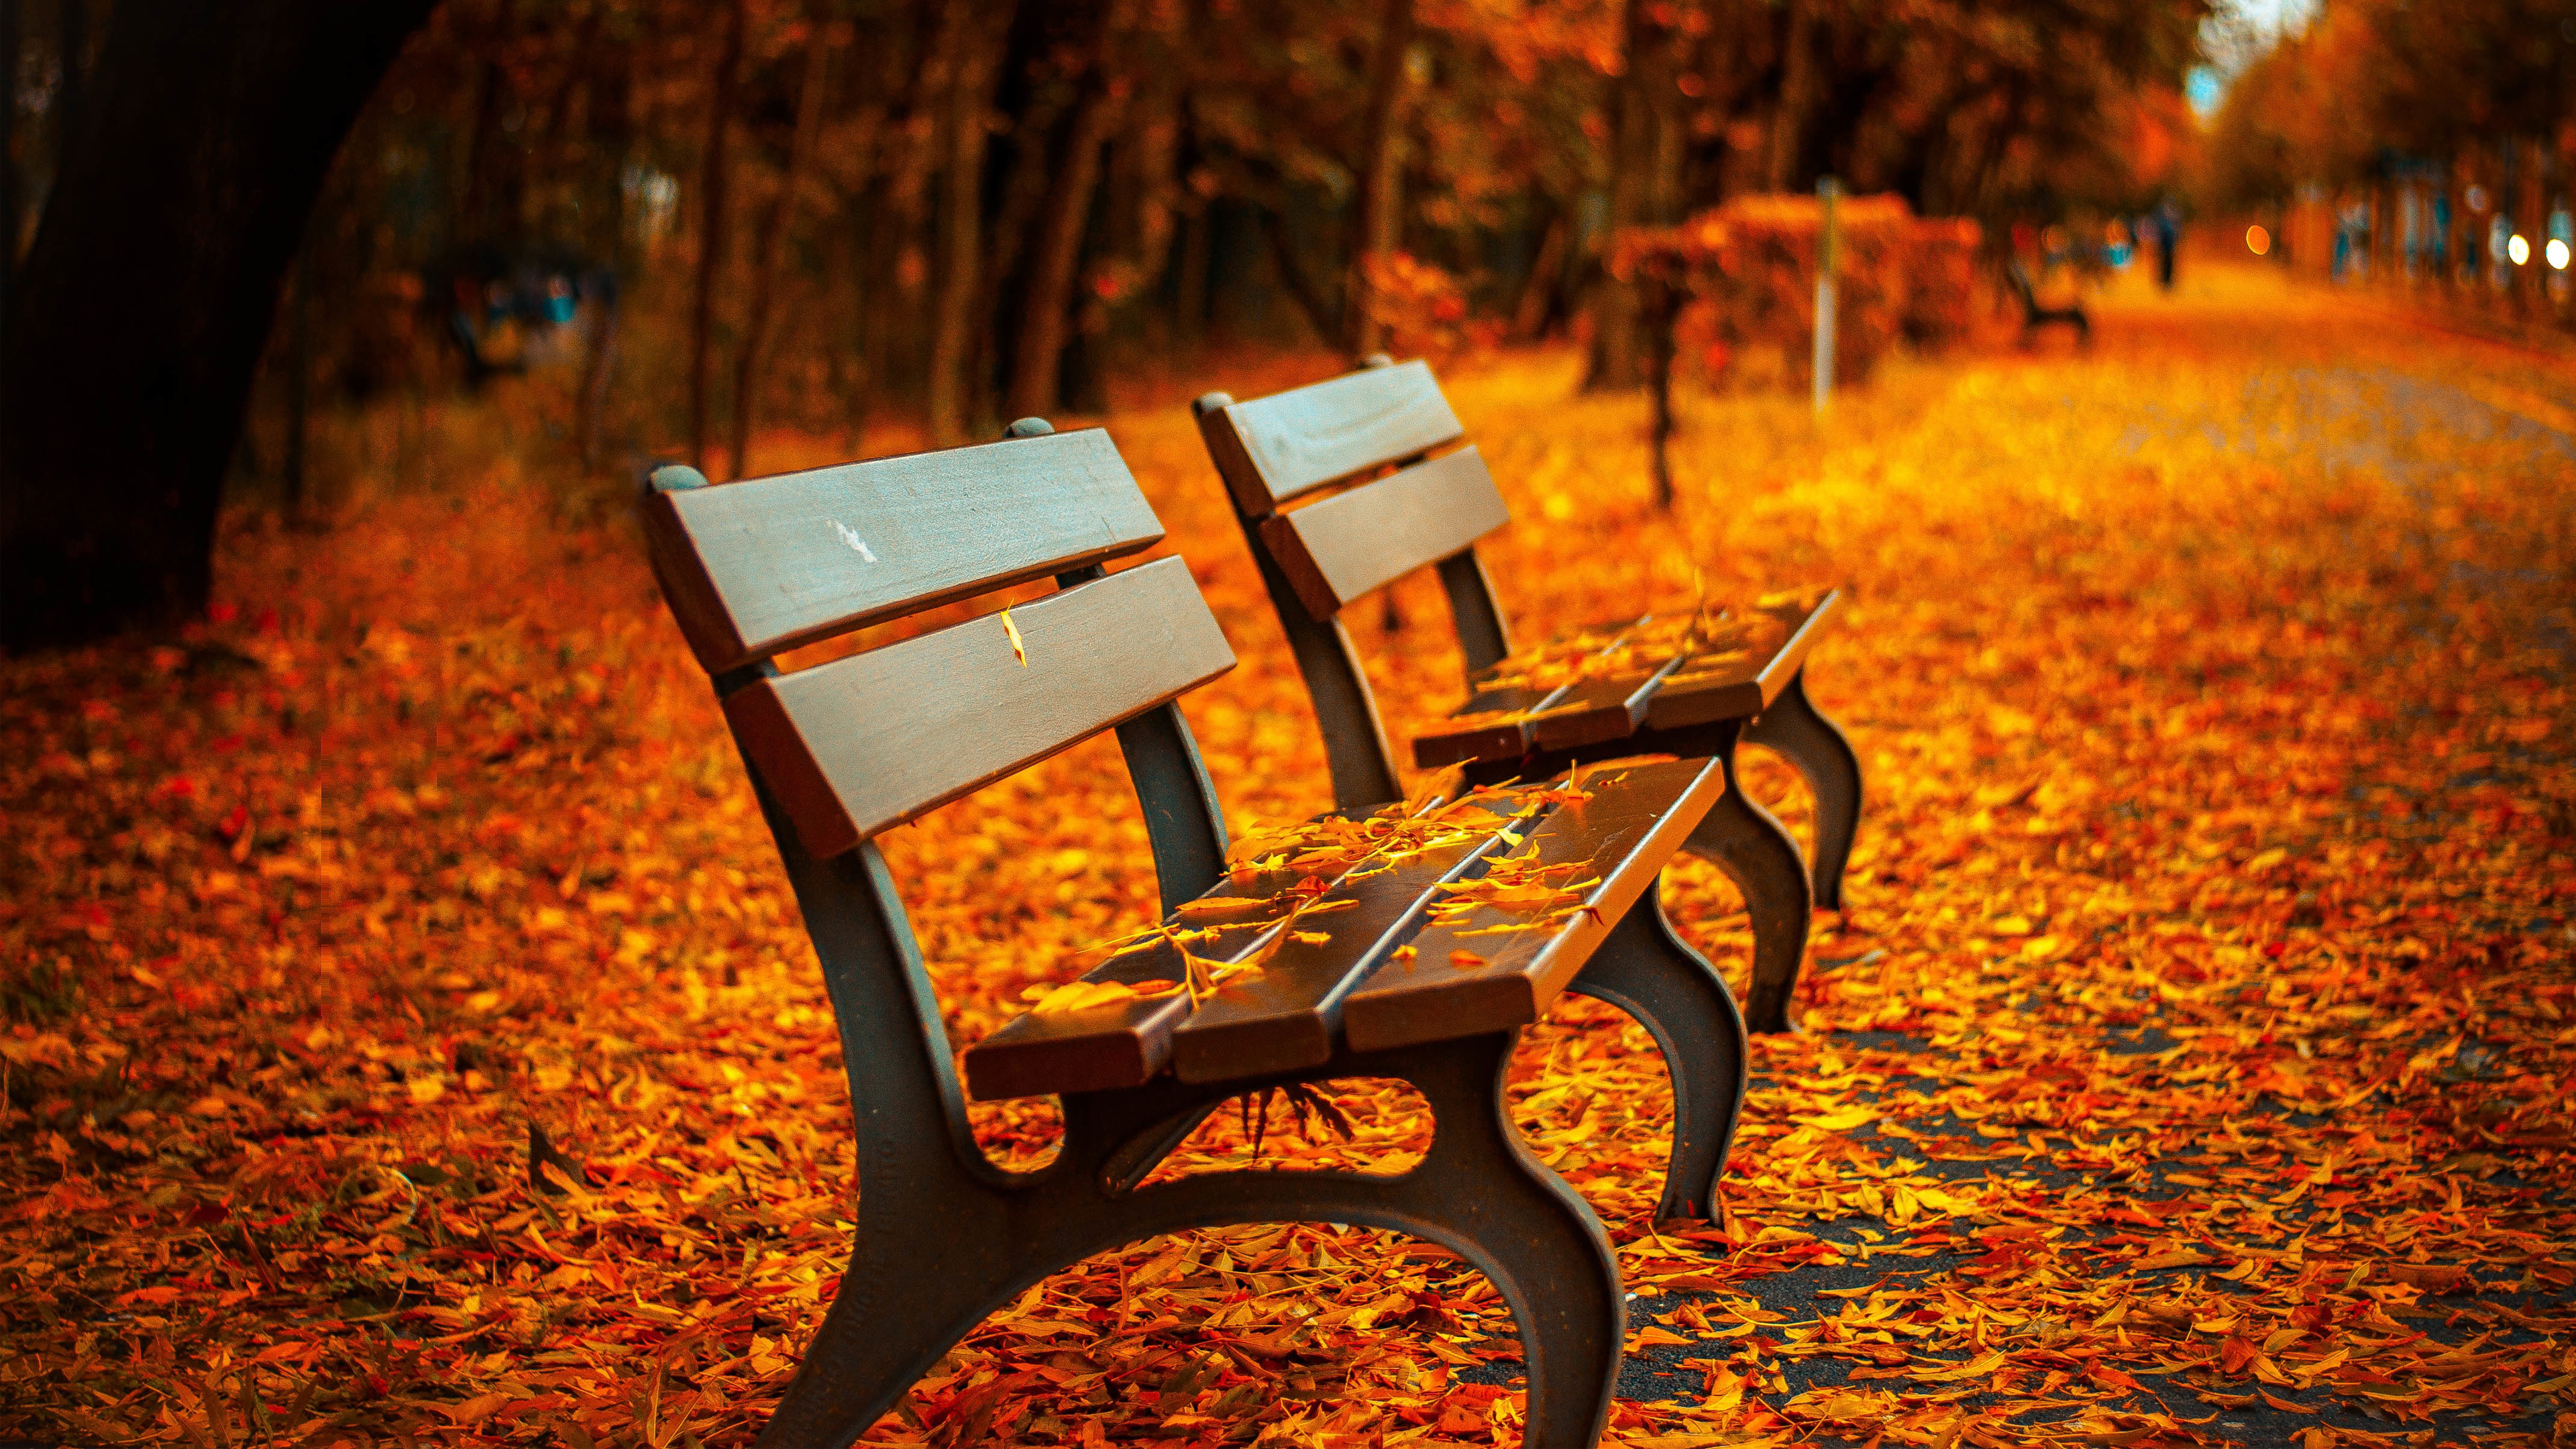 Wallpapers Tagged With AUTUMN | AUTUMN HD Wallpapers | Page 1